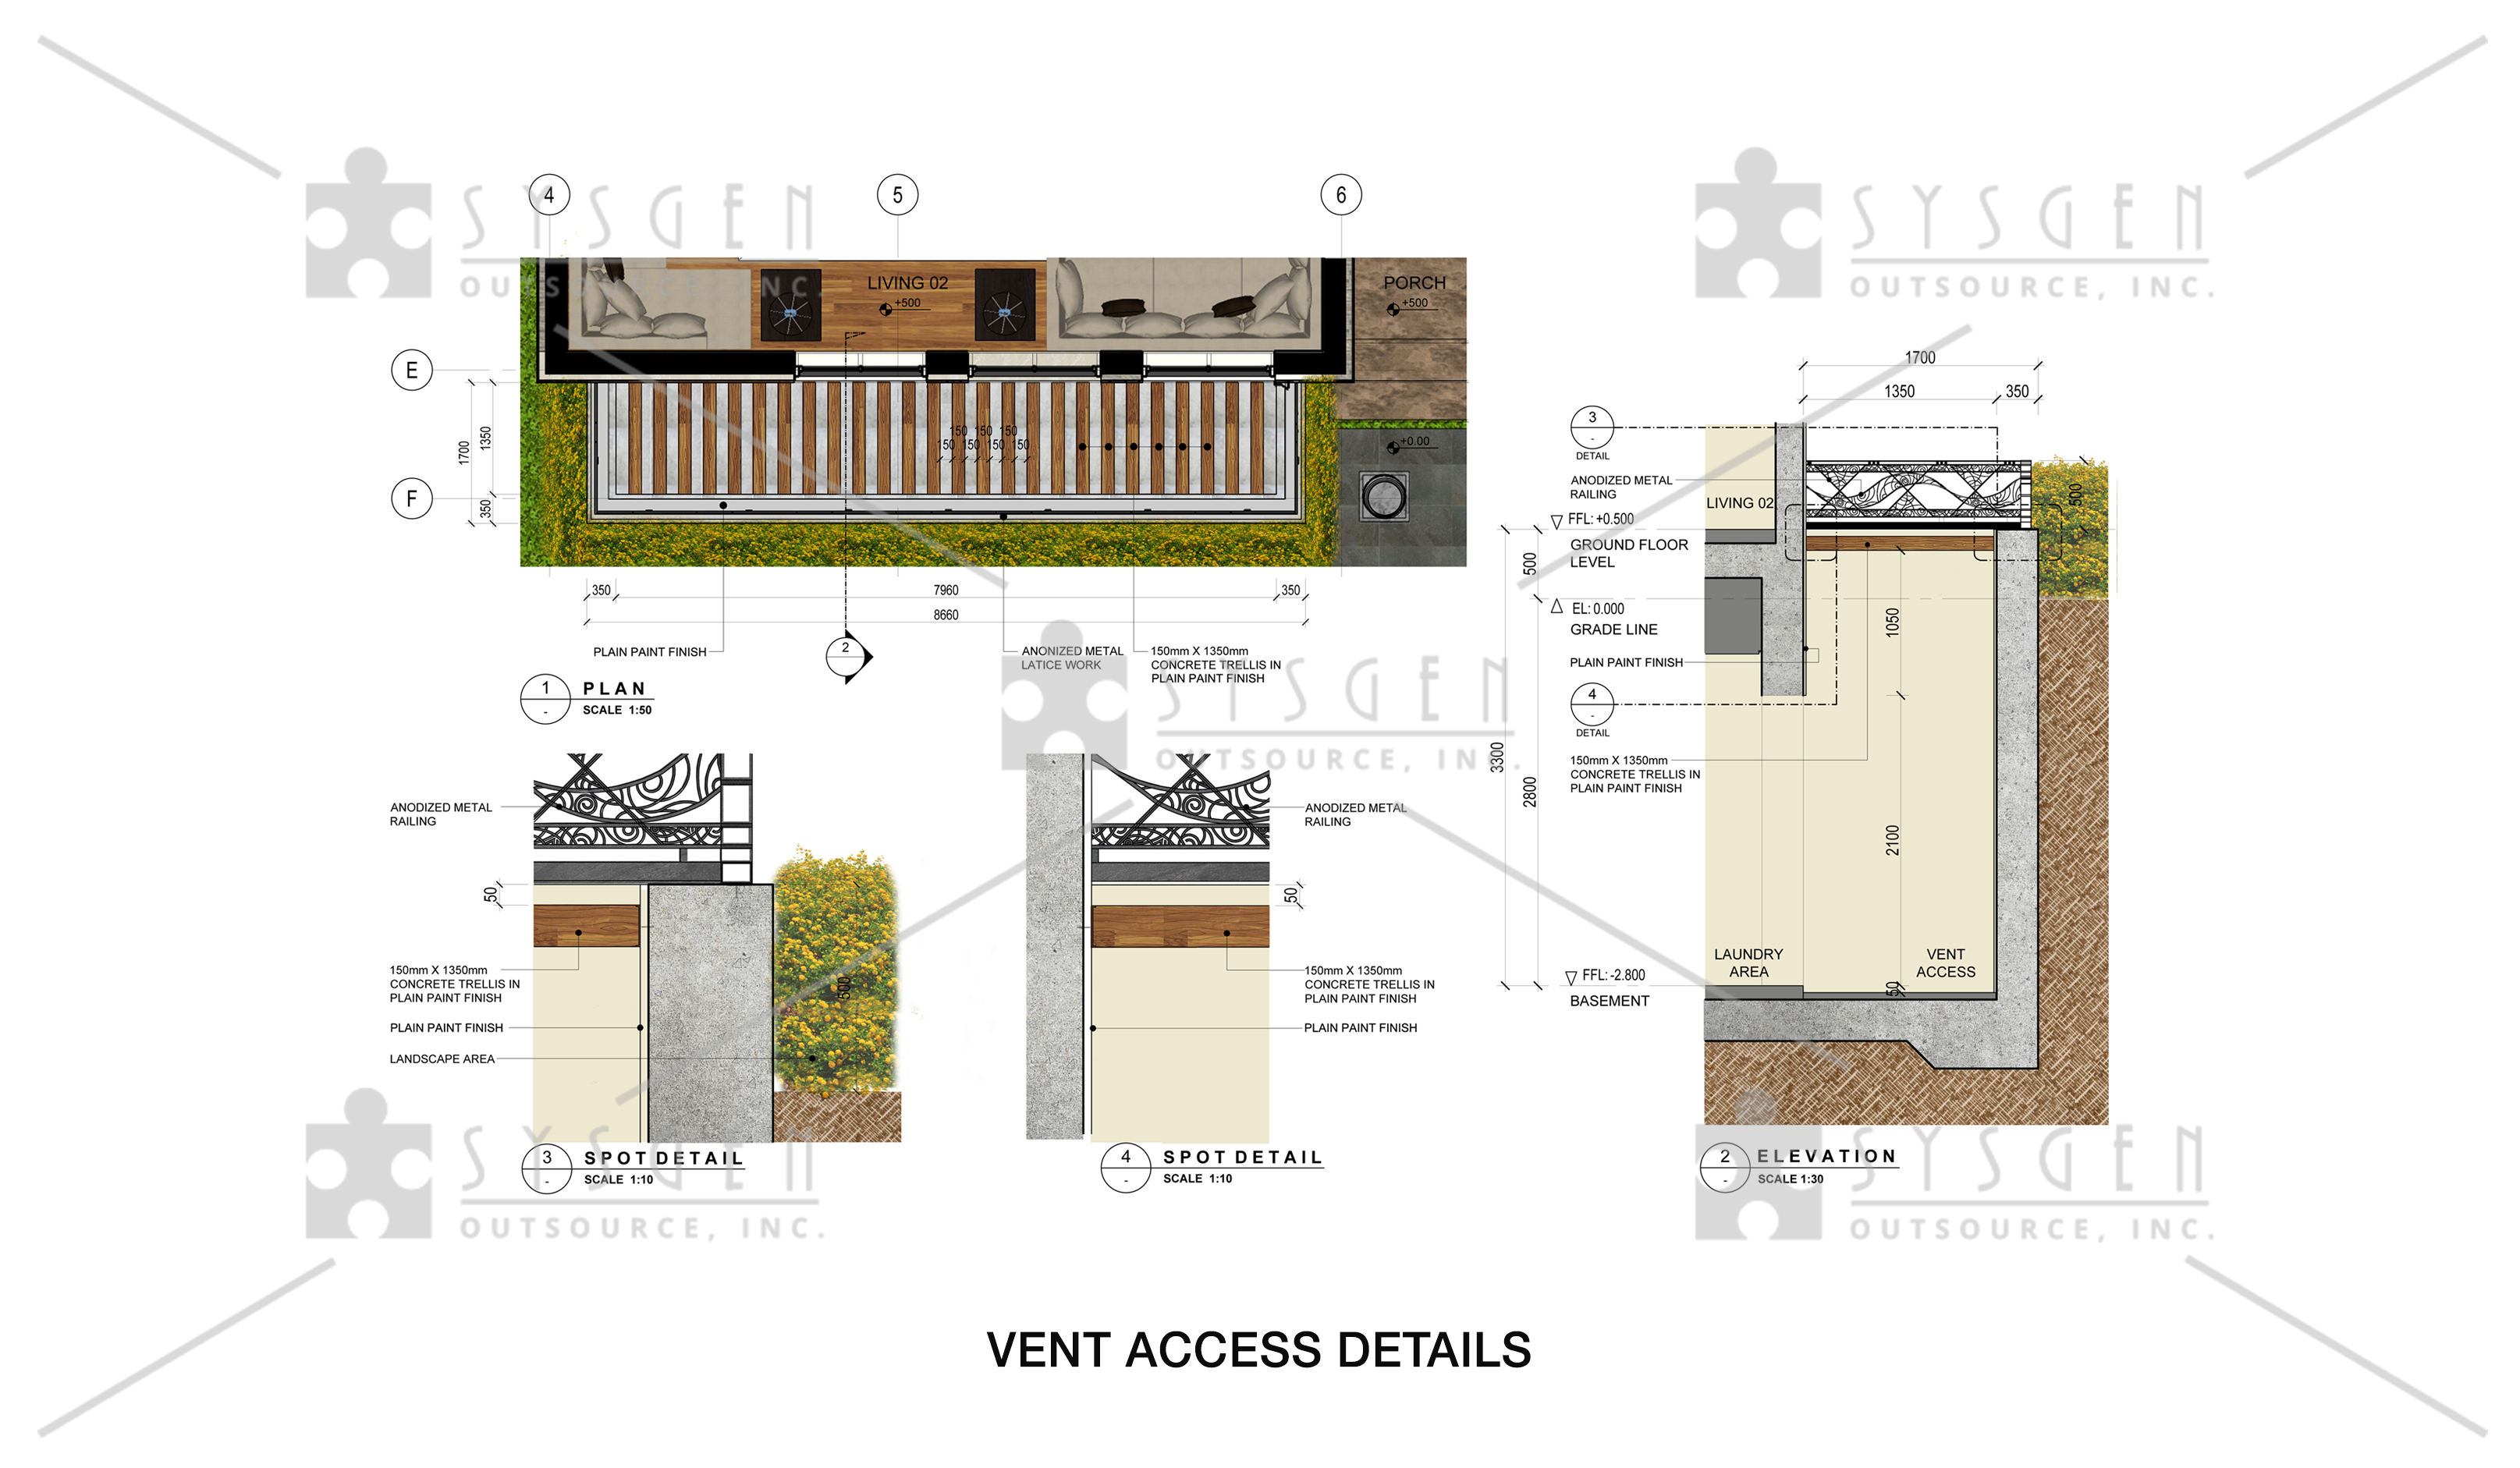 sysgen-outsource-cad-outsourcing-services-sketch-up-residential_villa-katnis14